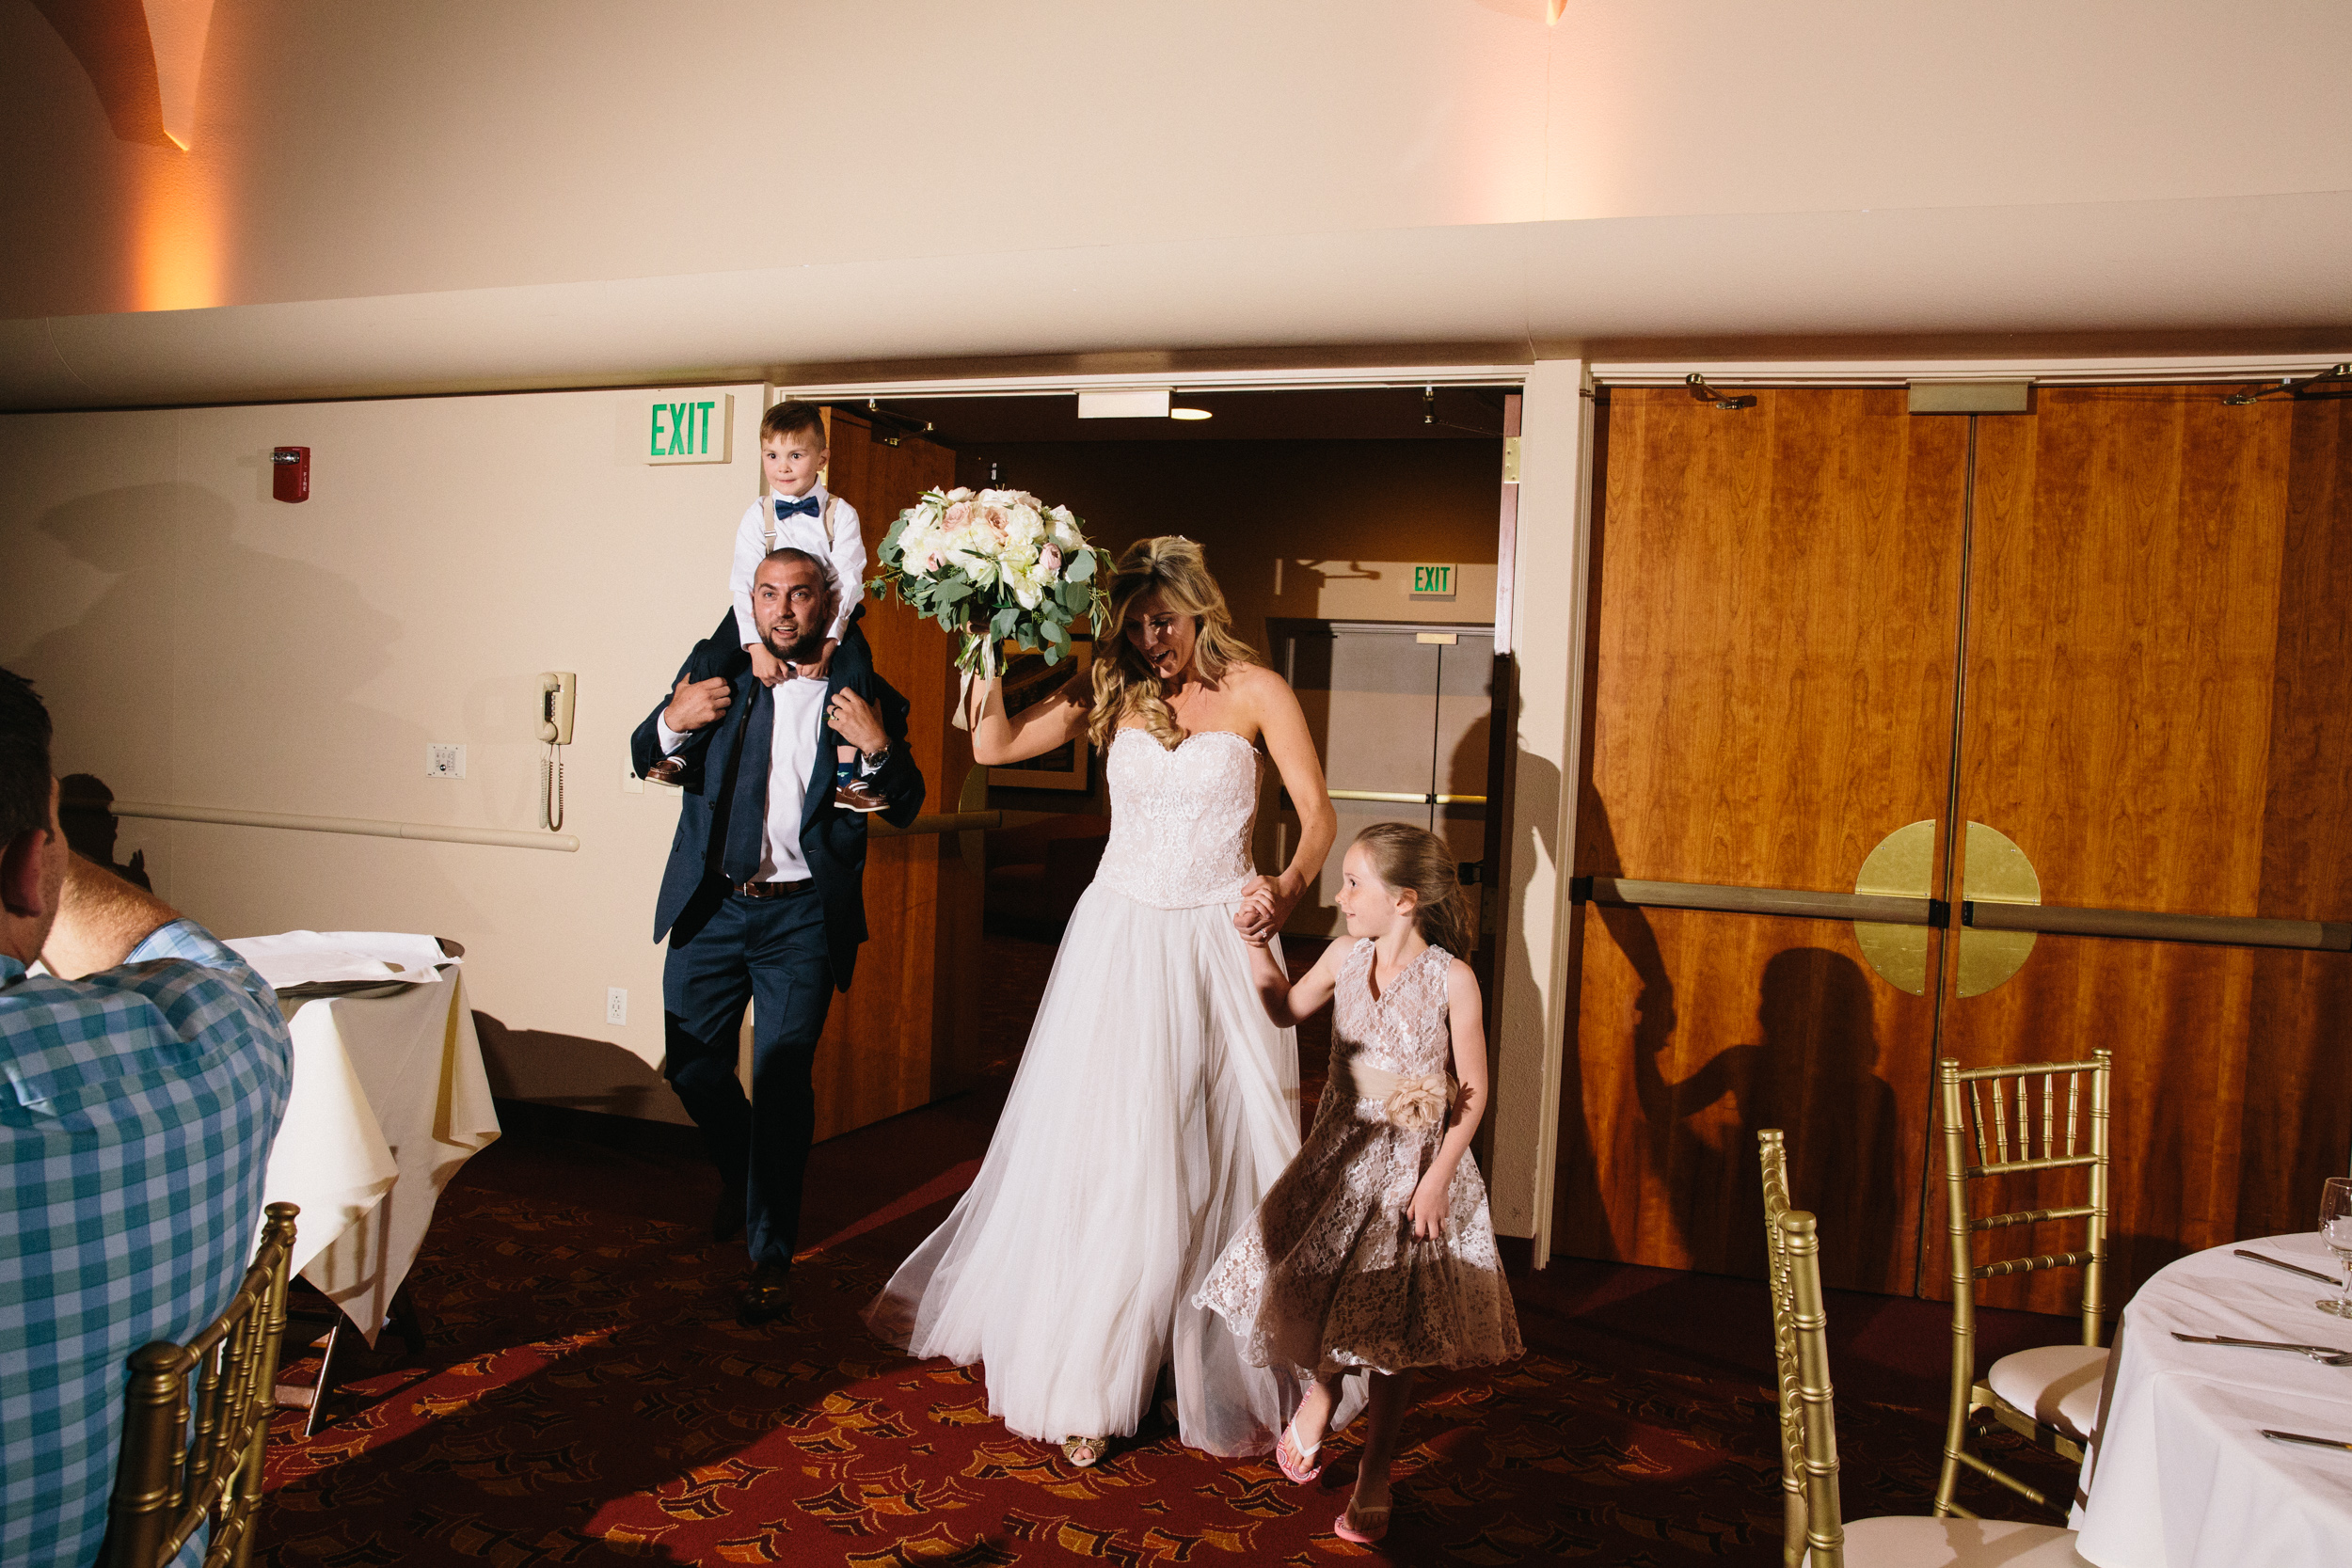 5-27-2017 Lindsay and Eric wedding photography by Brian Milo-161.jpg